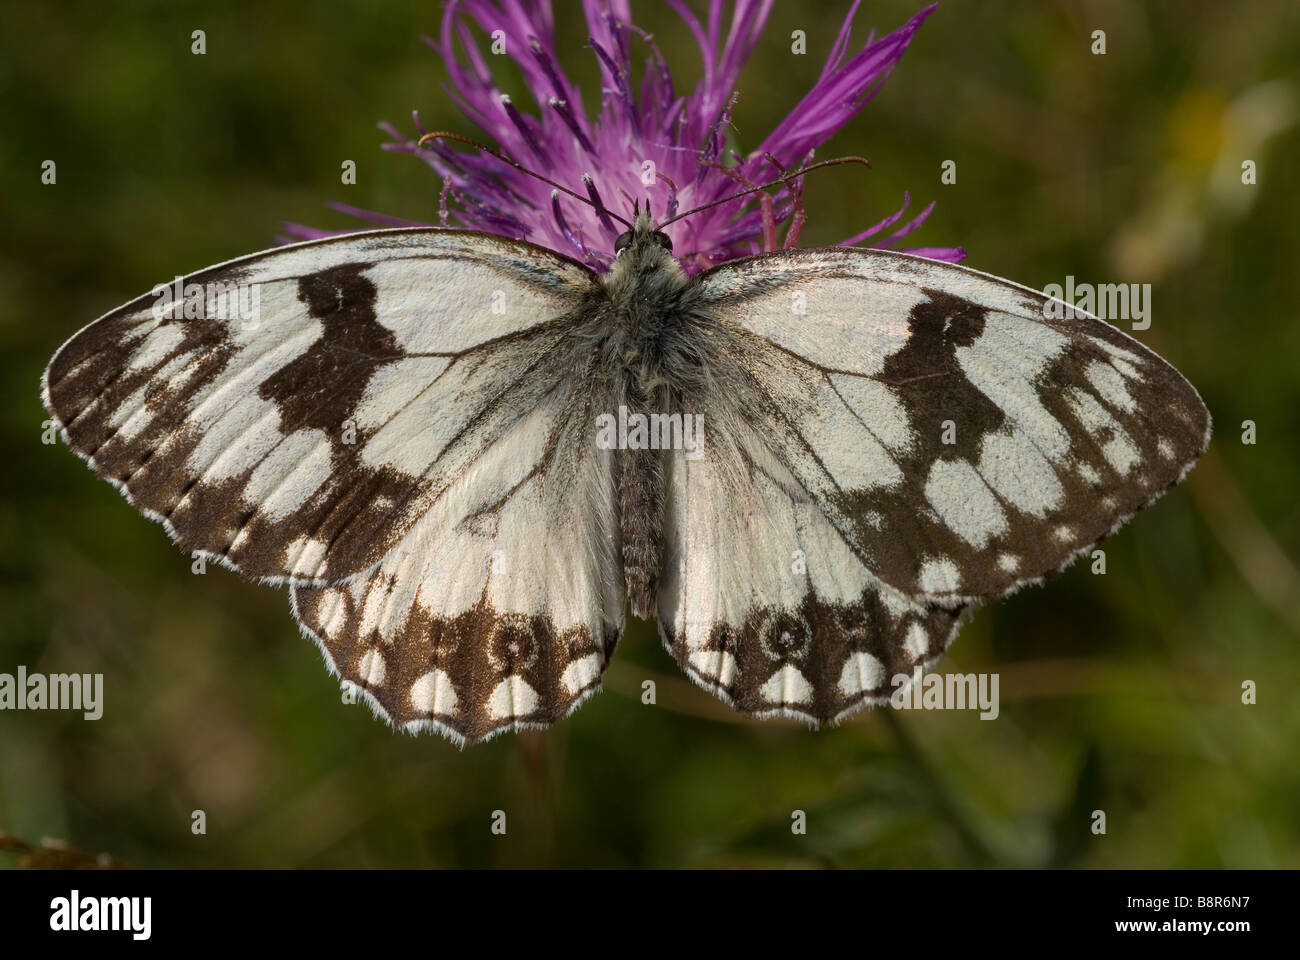 Male iberian marbled white butterfly (Melanargia lachesis) - Stock Image